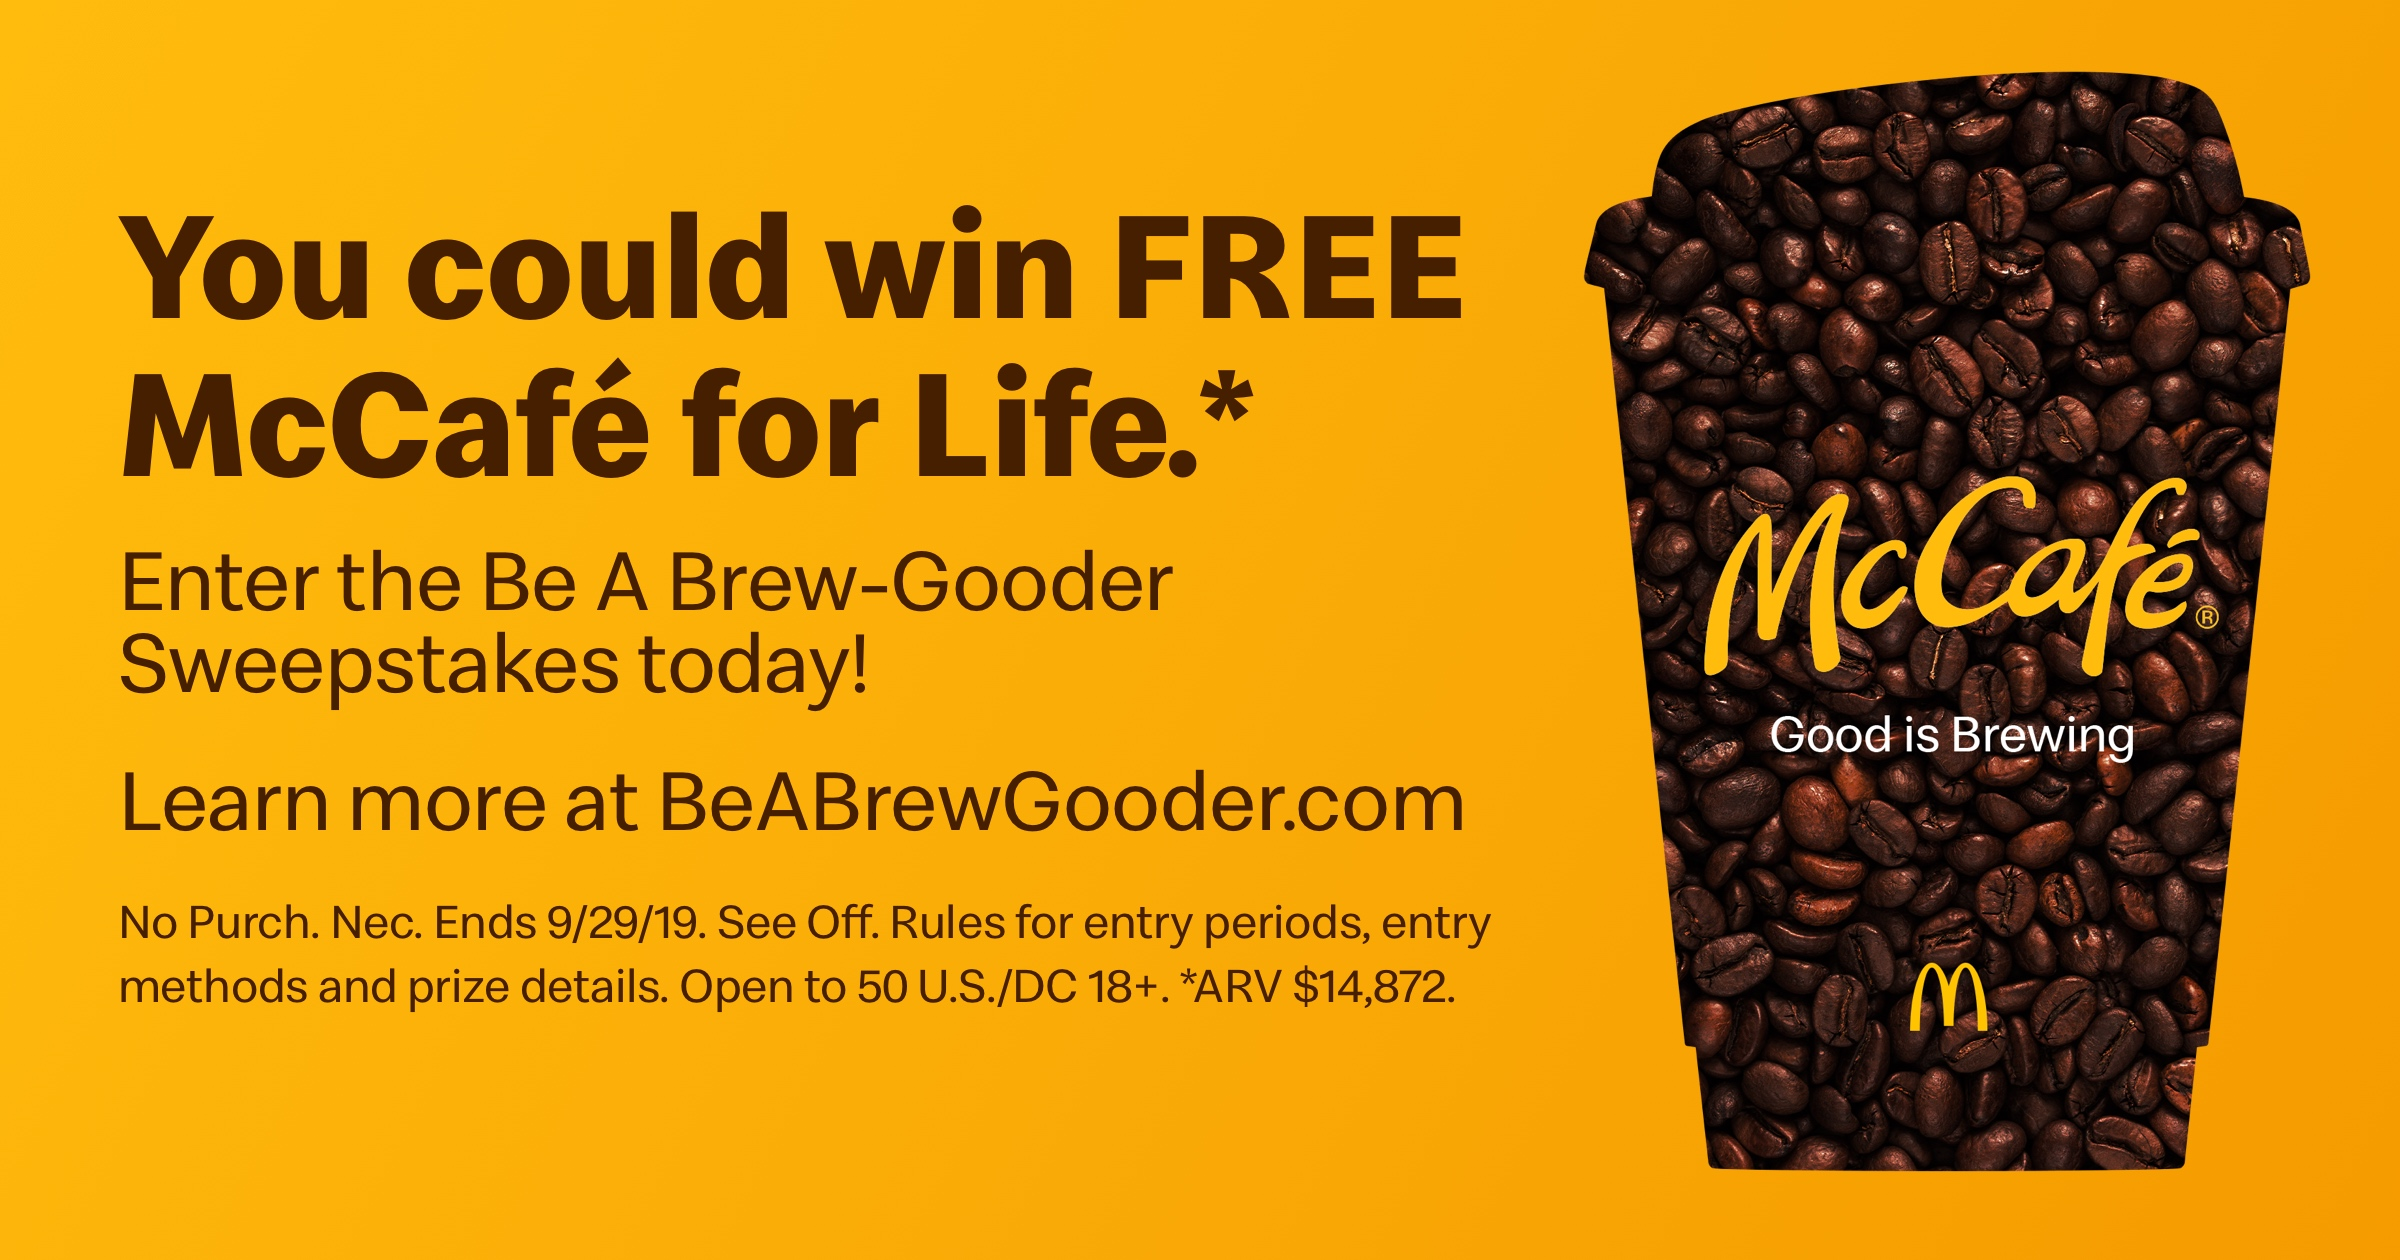 """McDonald's is hosting their """"McCafé Be A Brew-Gooder Sweepstakes"""" through September 29th. Nominate someone who """"has done something good big or small"""" for a chance to win McCafé for Life for yourself and your nominee."""